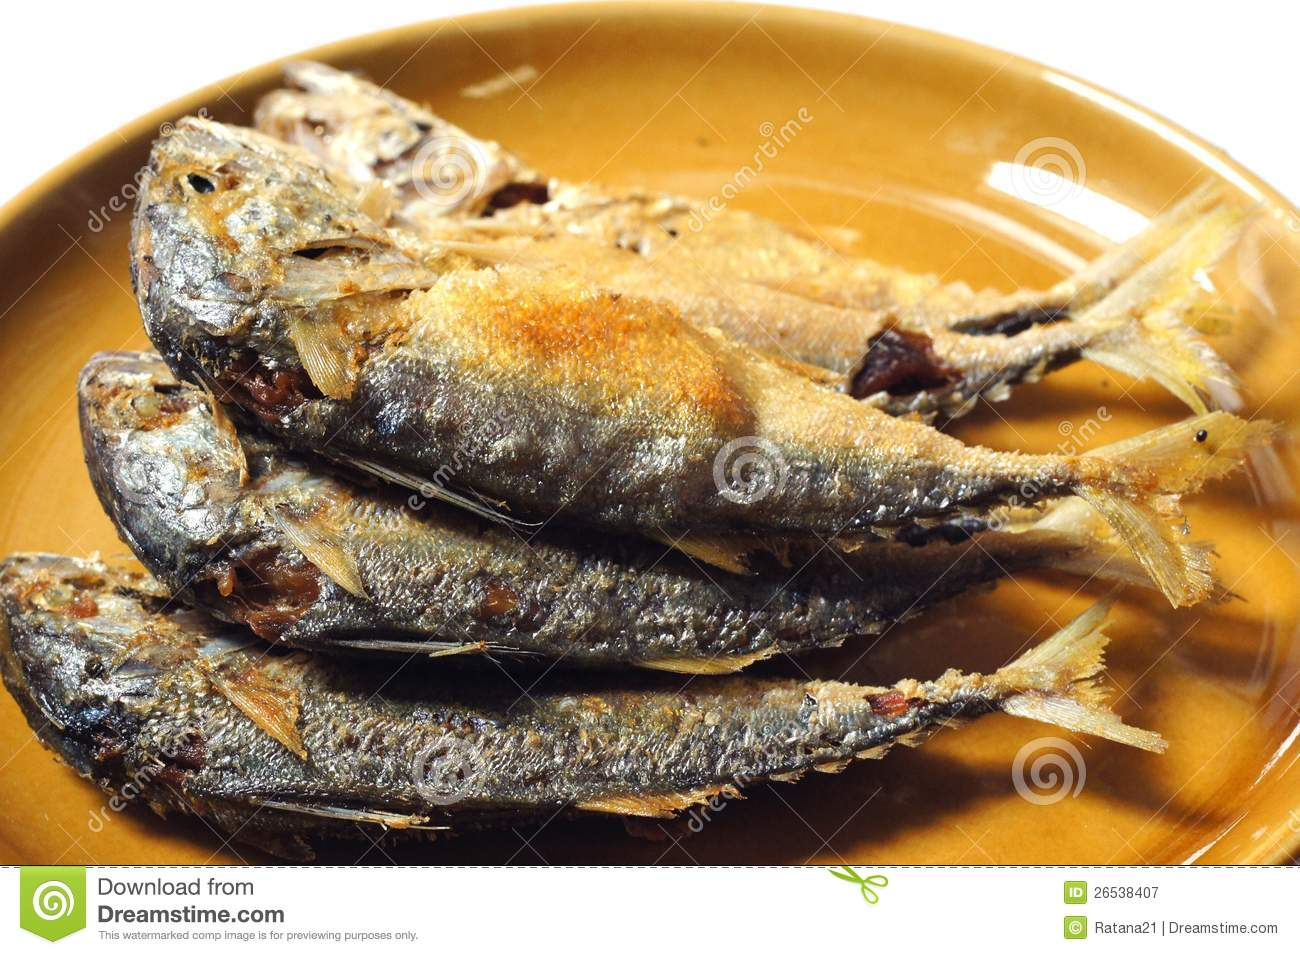 Fried mackerel fish stock image image of cook oriental for How to cook mackerel fish